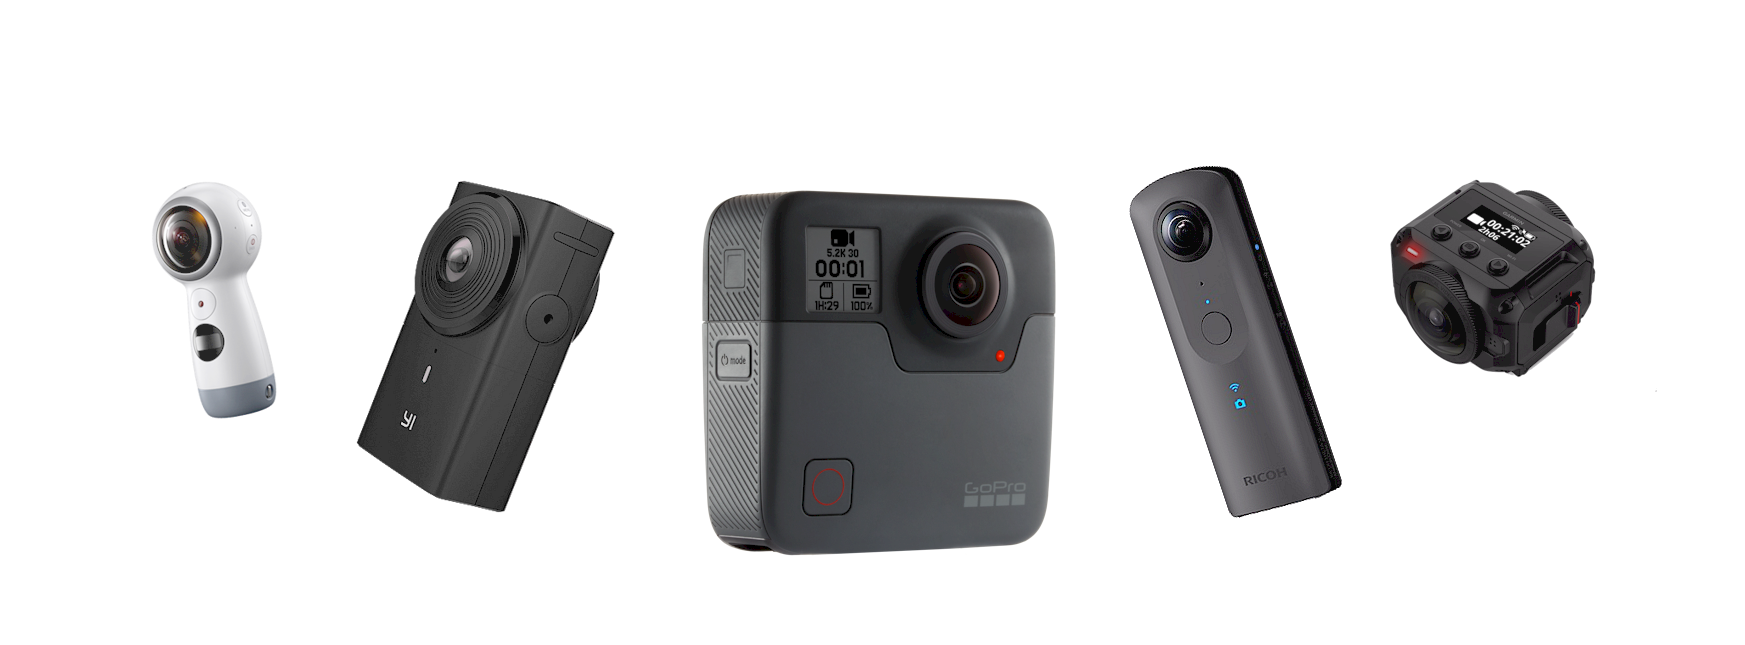 360 Video Cameras supported